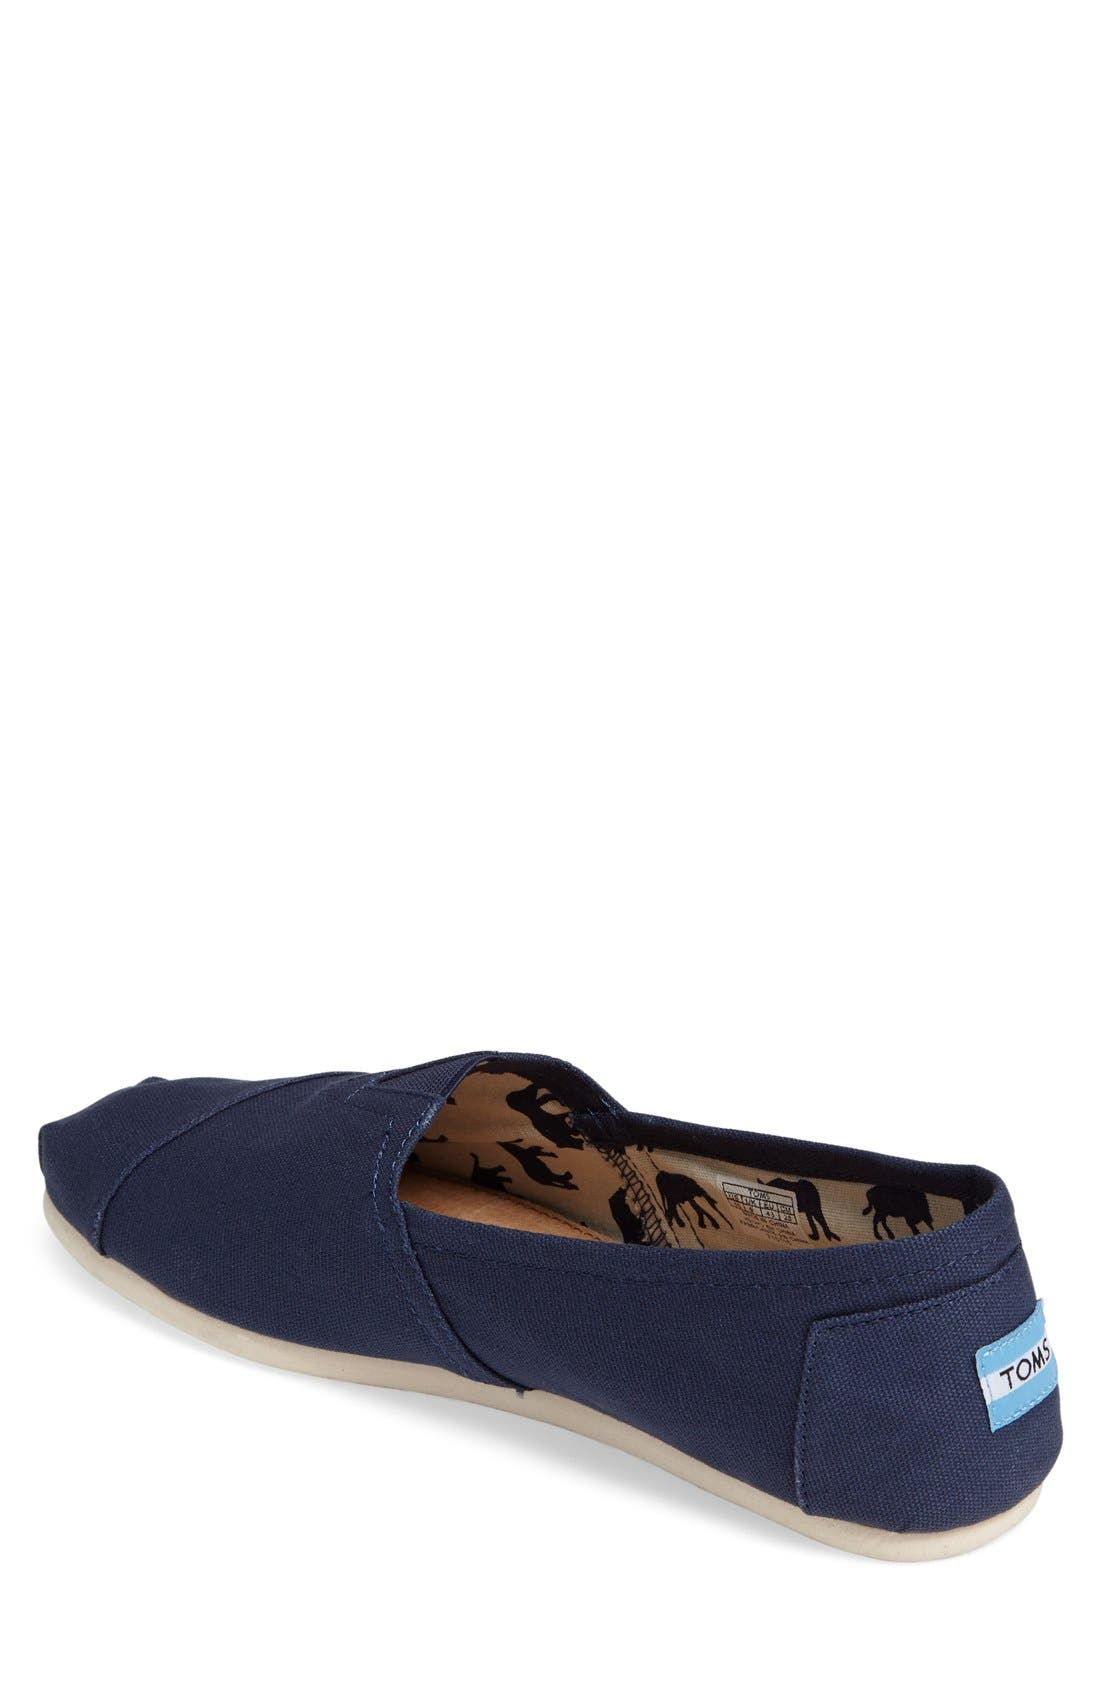 TOMS, 'Classic' Canvas Slip-On, Alternate thumbnail 8, color, NAVY